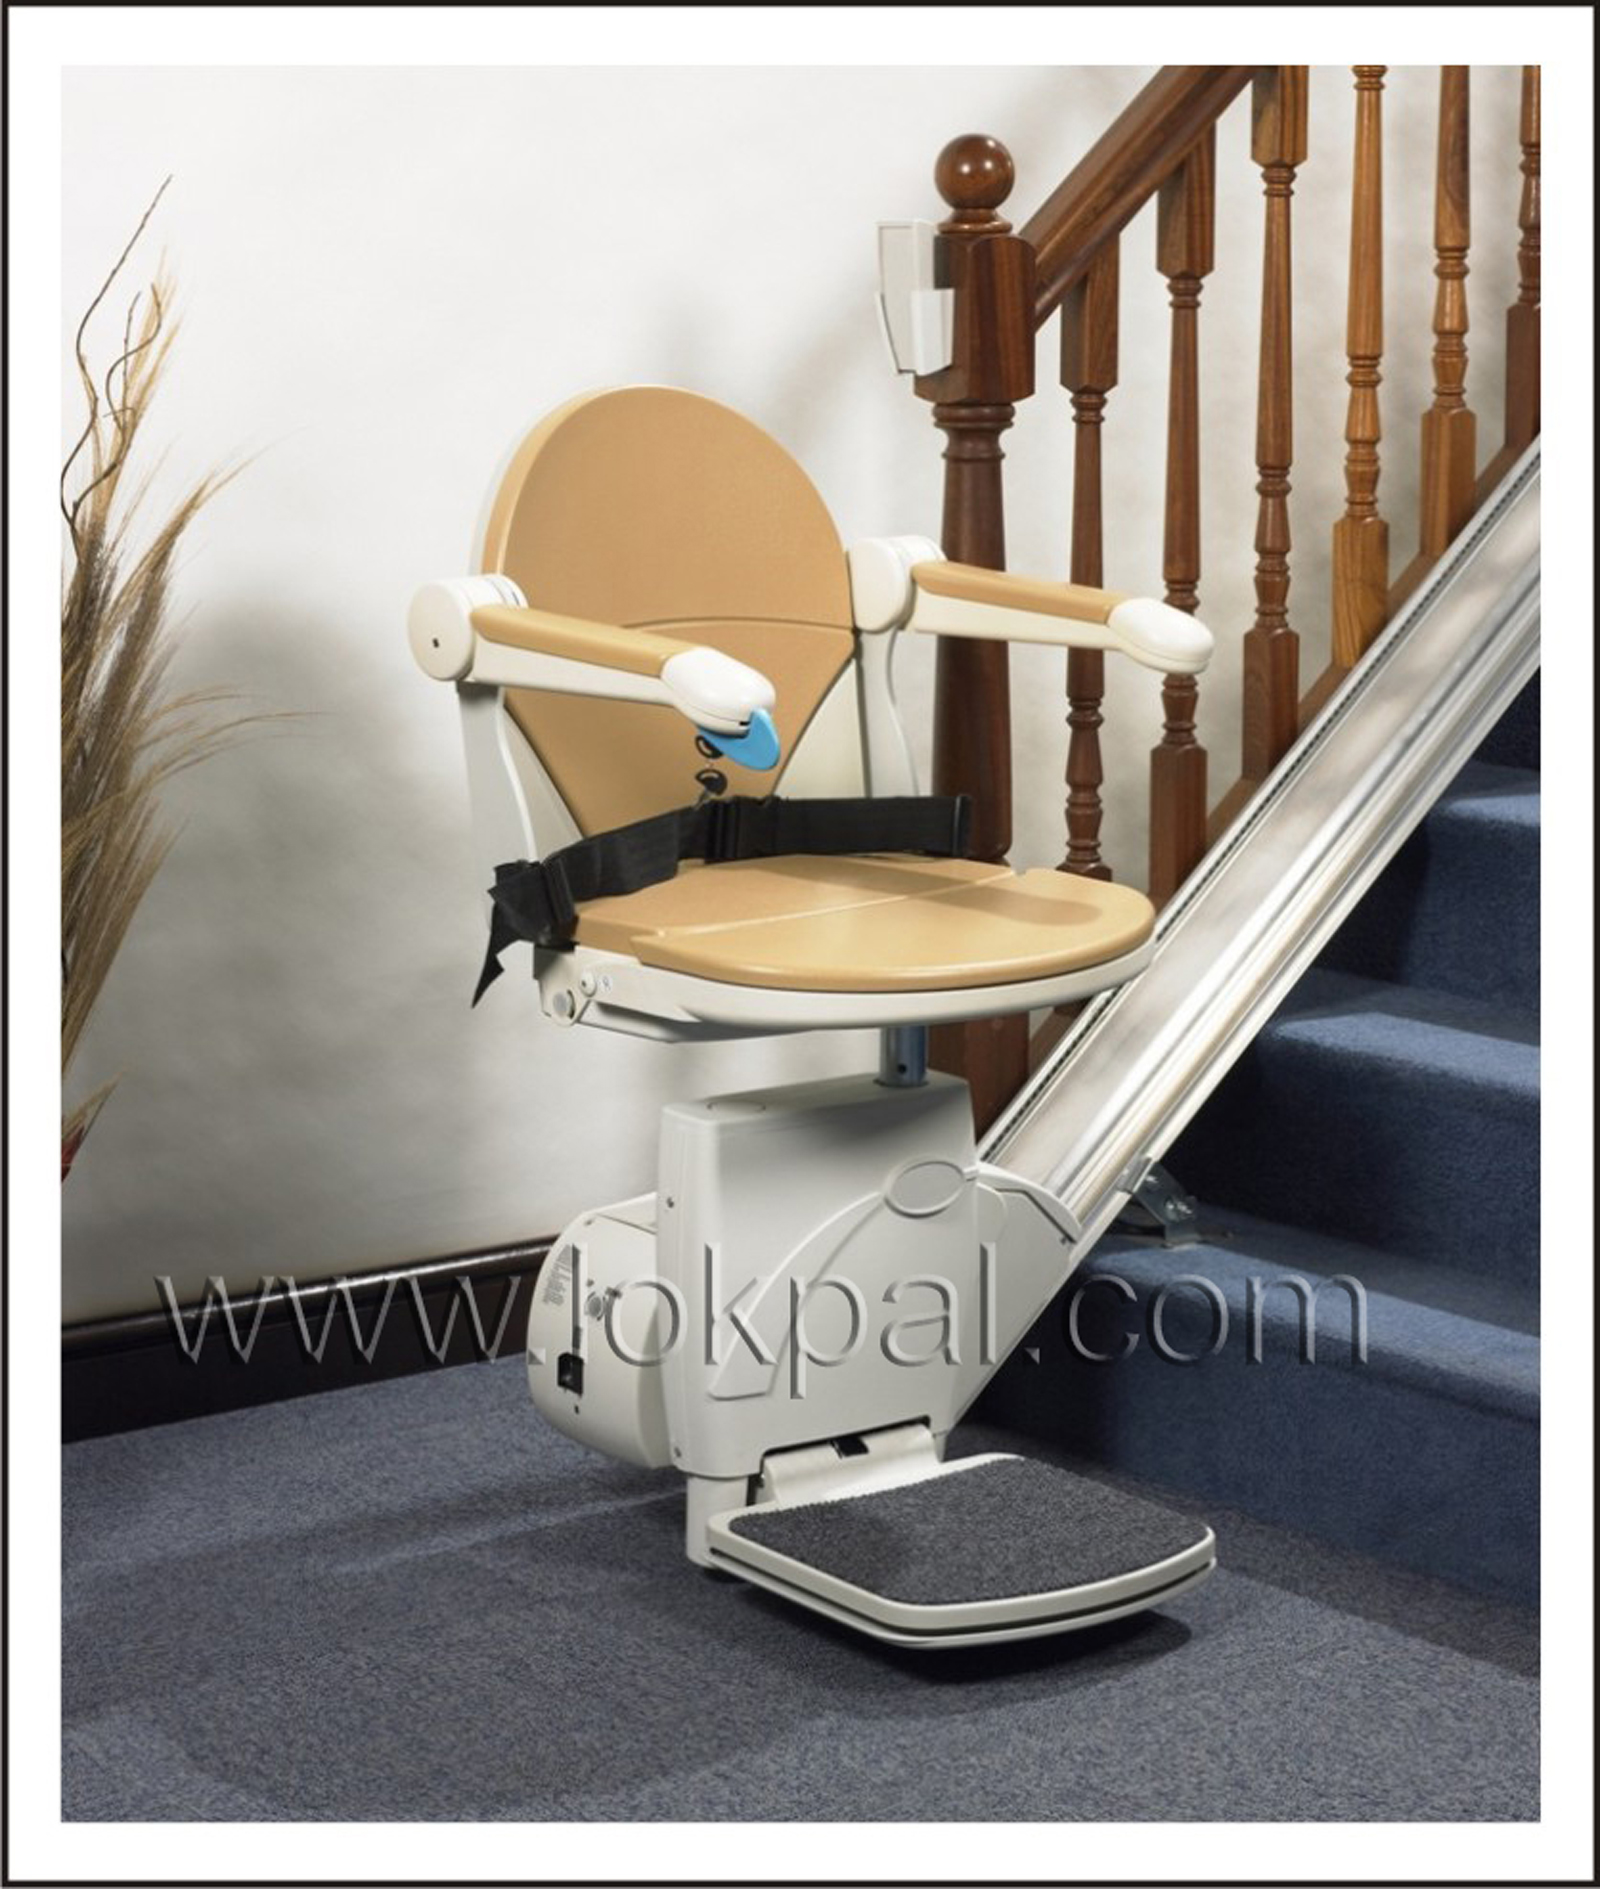 U003eStair Lift Chair, Stairlft Chair Manufacturers, Suppliers And Dealers